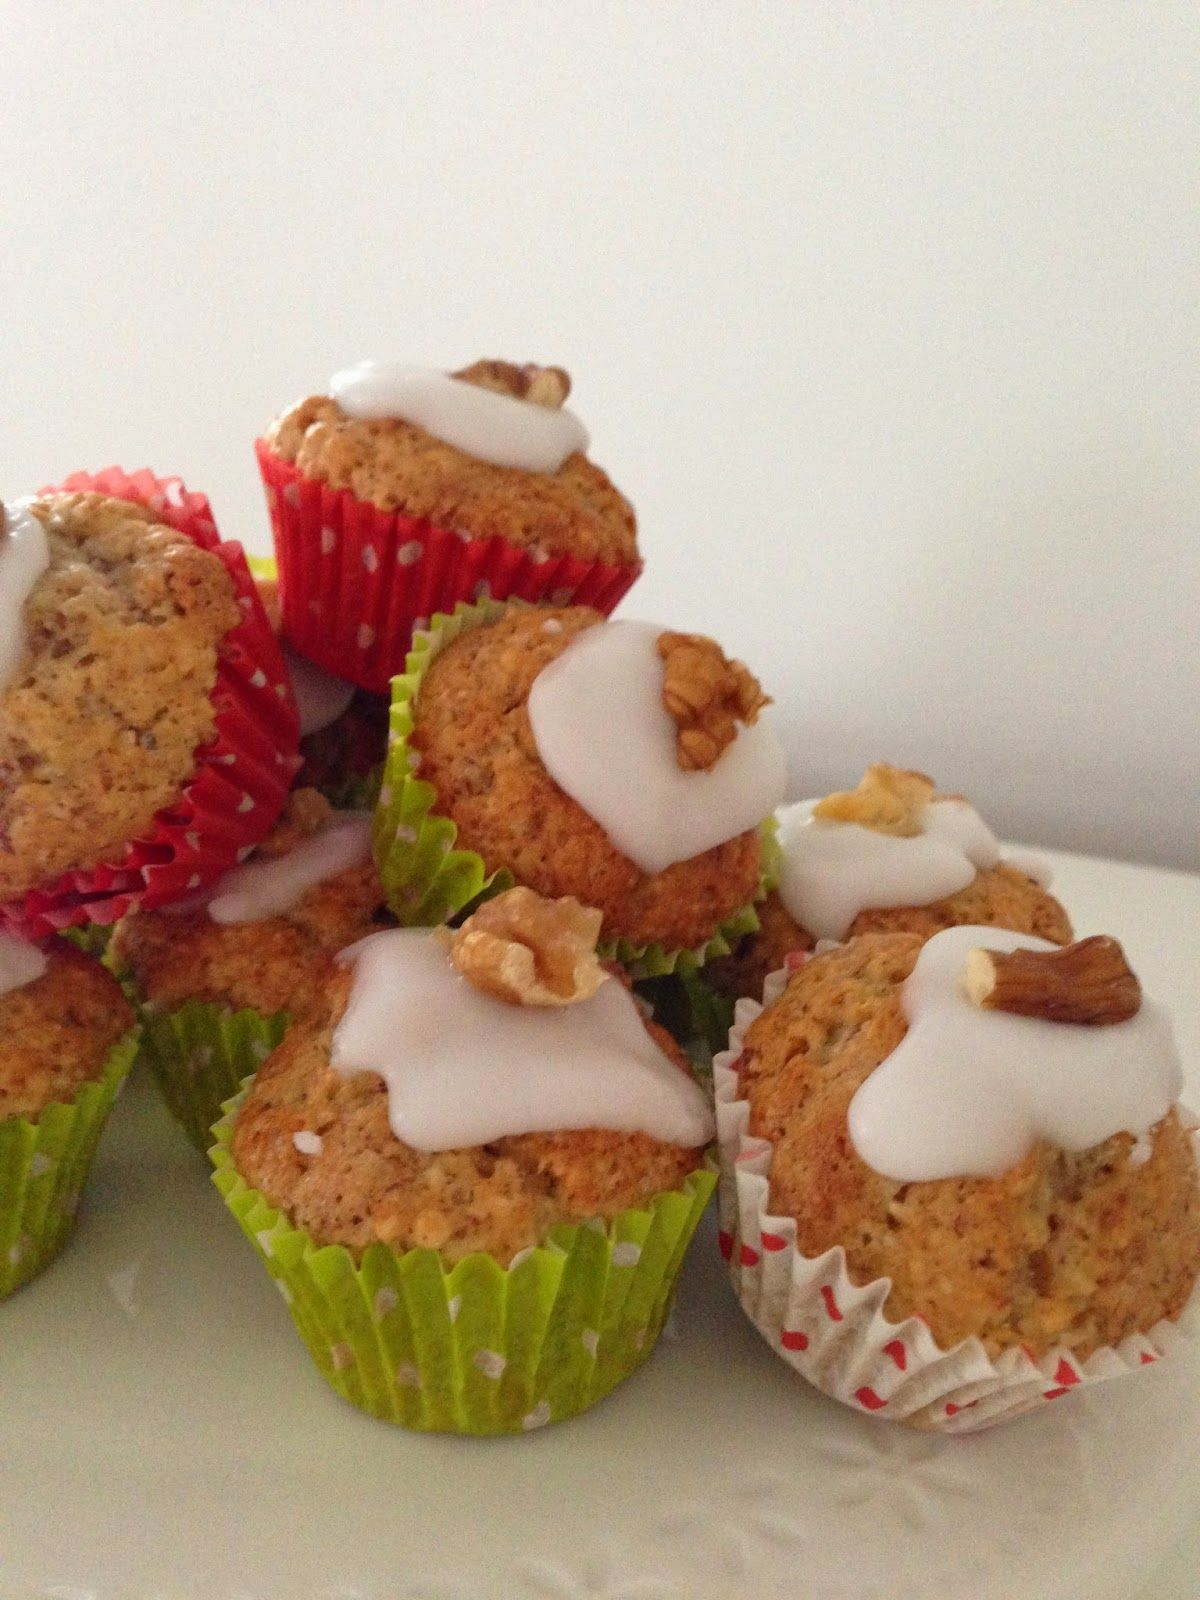 Katrins Backecke: Baumnuss-Rum Mini Muffins